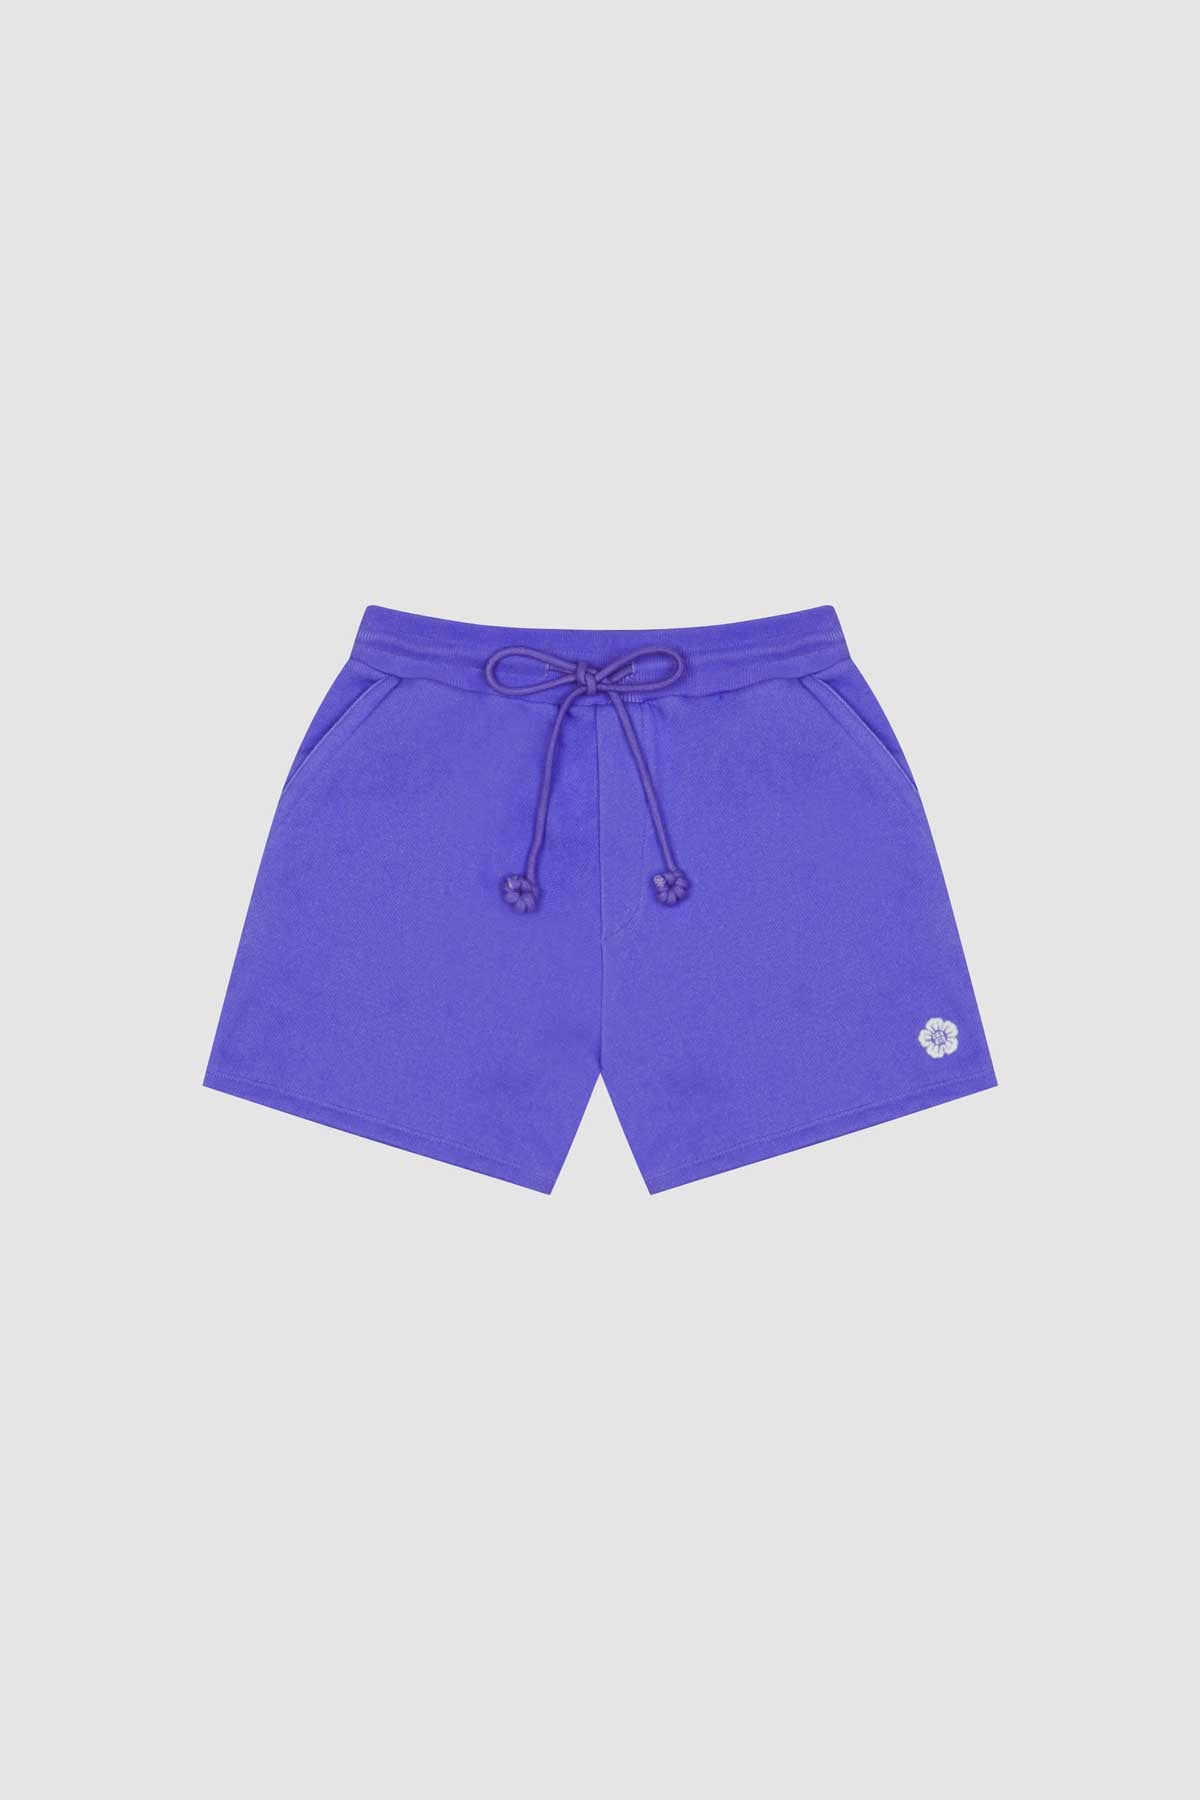 Photo of Violet Kush Women's Sweat Shorts, number 2